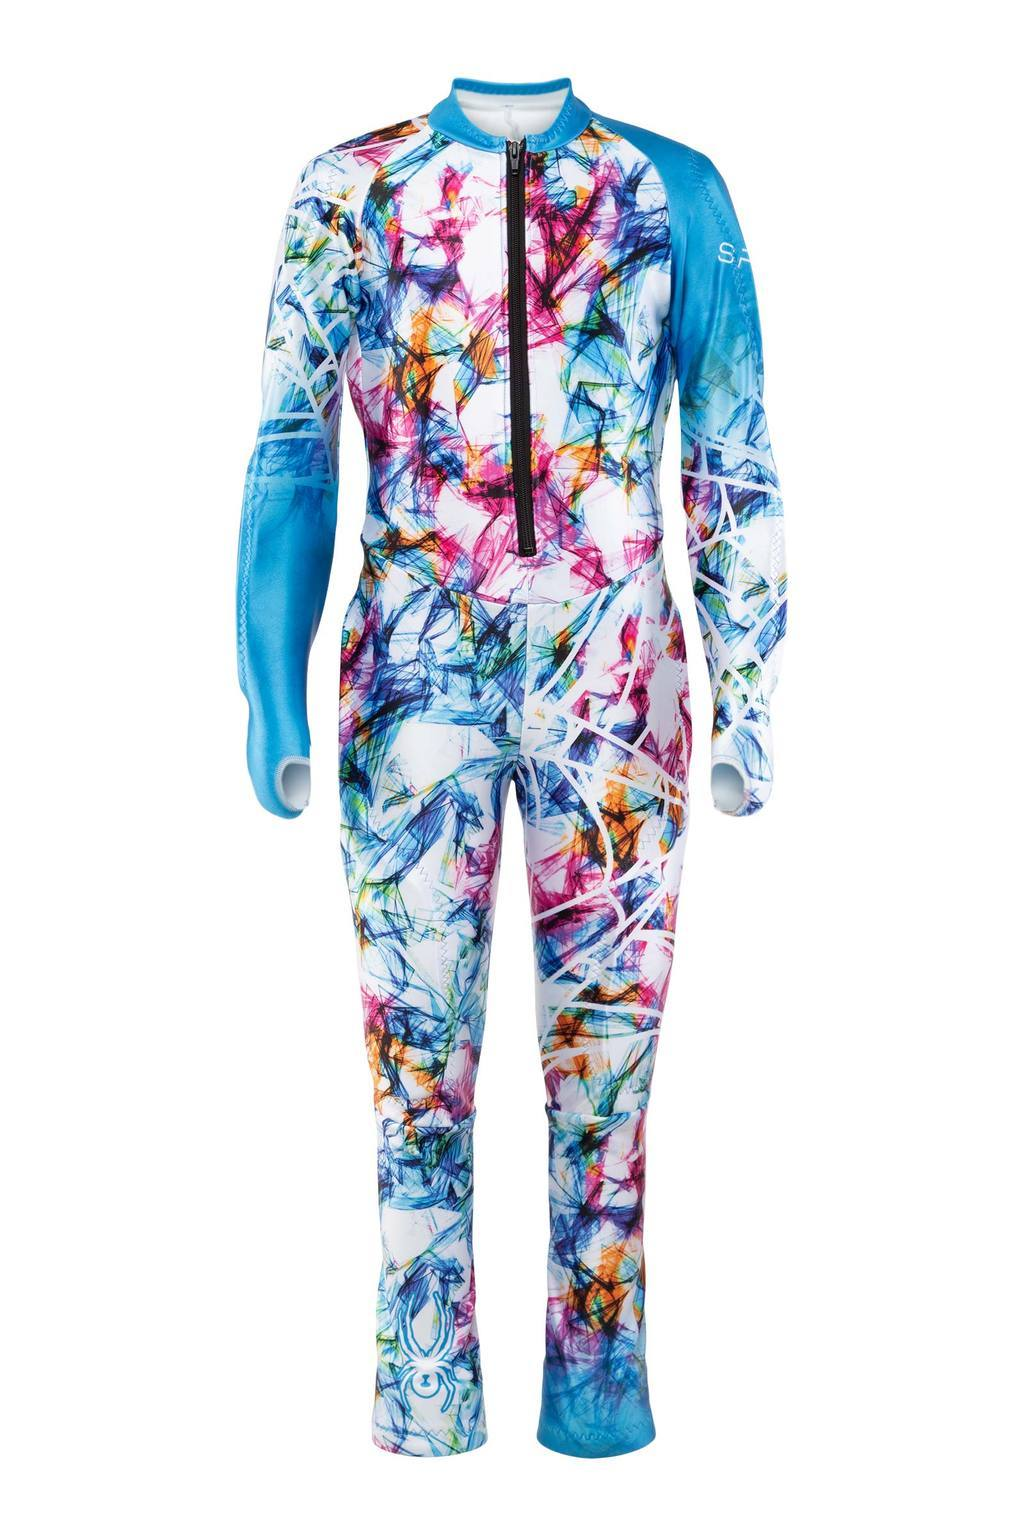 Spyder Performance GS Junior Race Suit